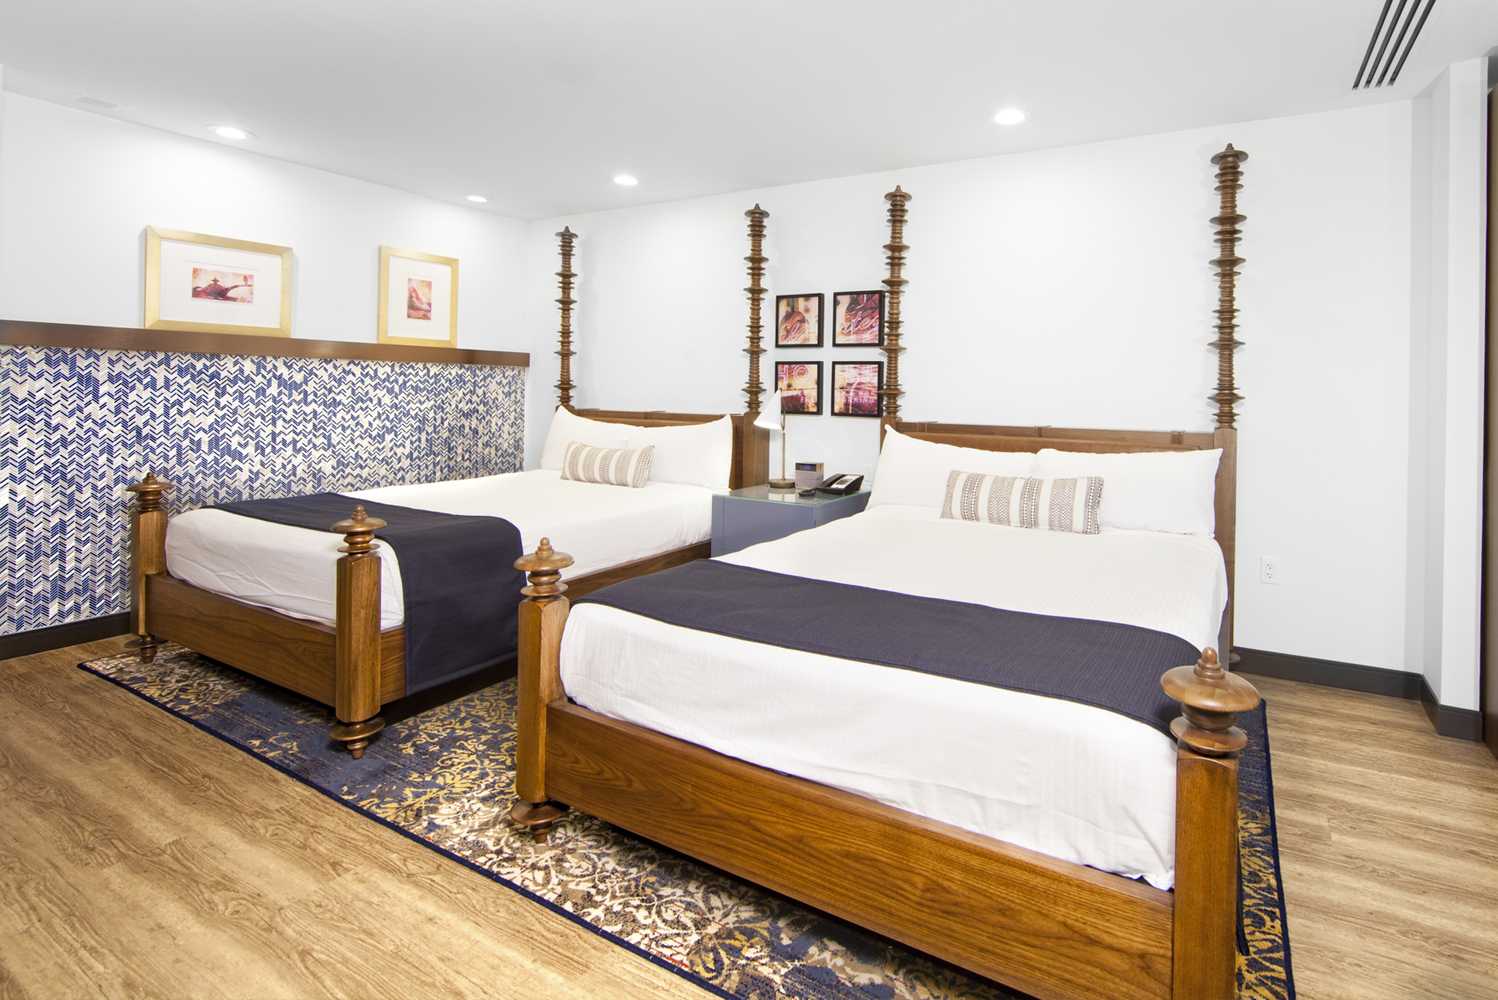 The rooms will also be incorporating Spanish Colonial style.